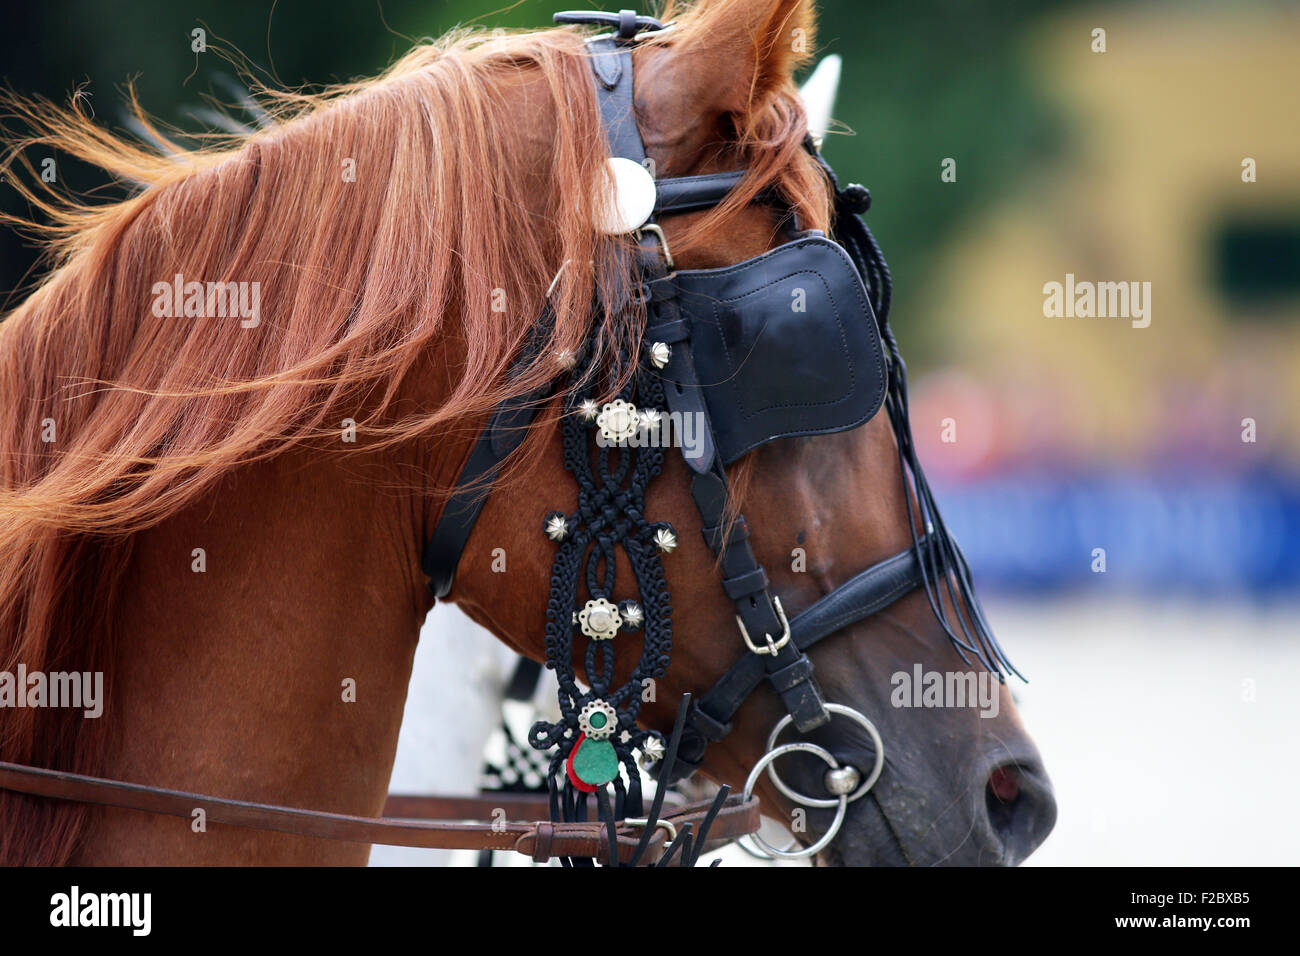 Face of a beautiful purebred horse with trappings. Side view portraits of a thoroughbred horse in harnesses - Stock Image